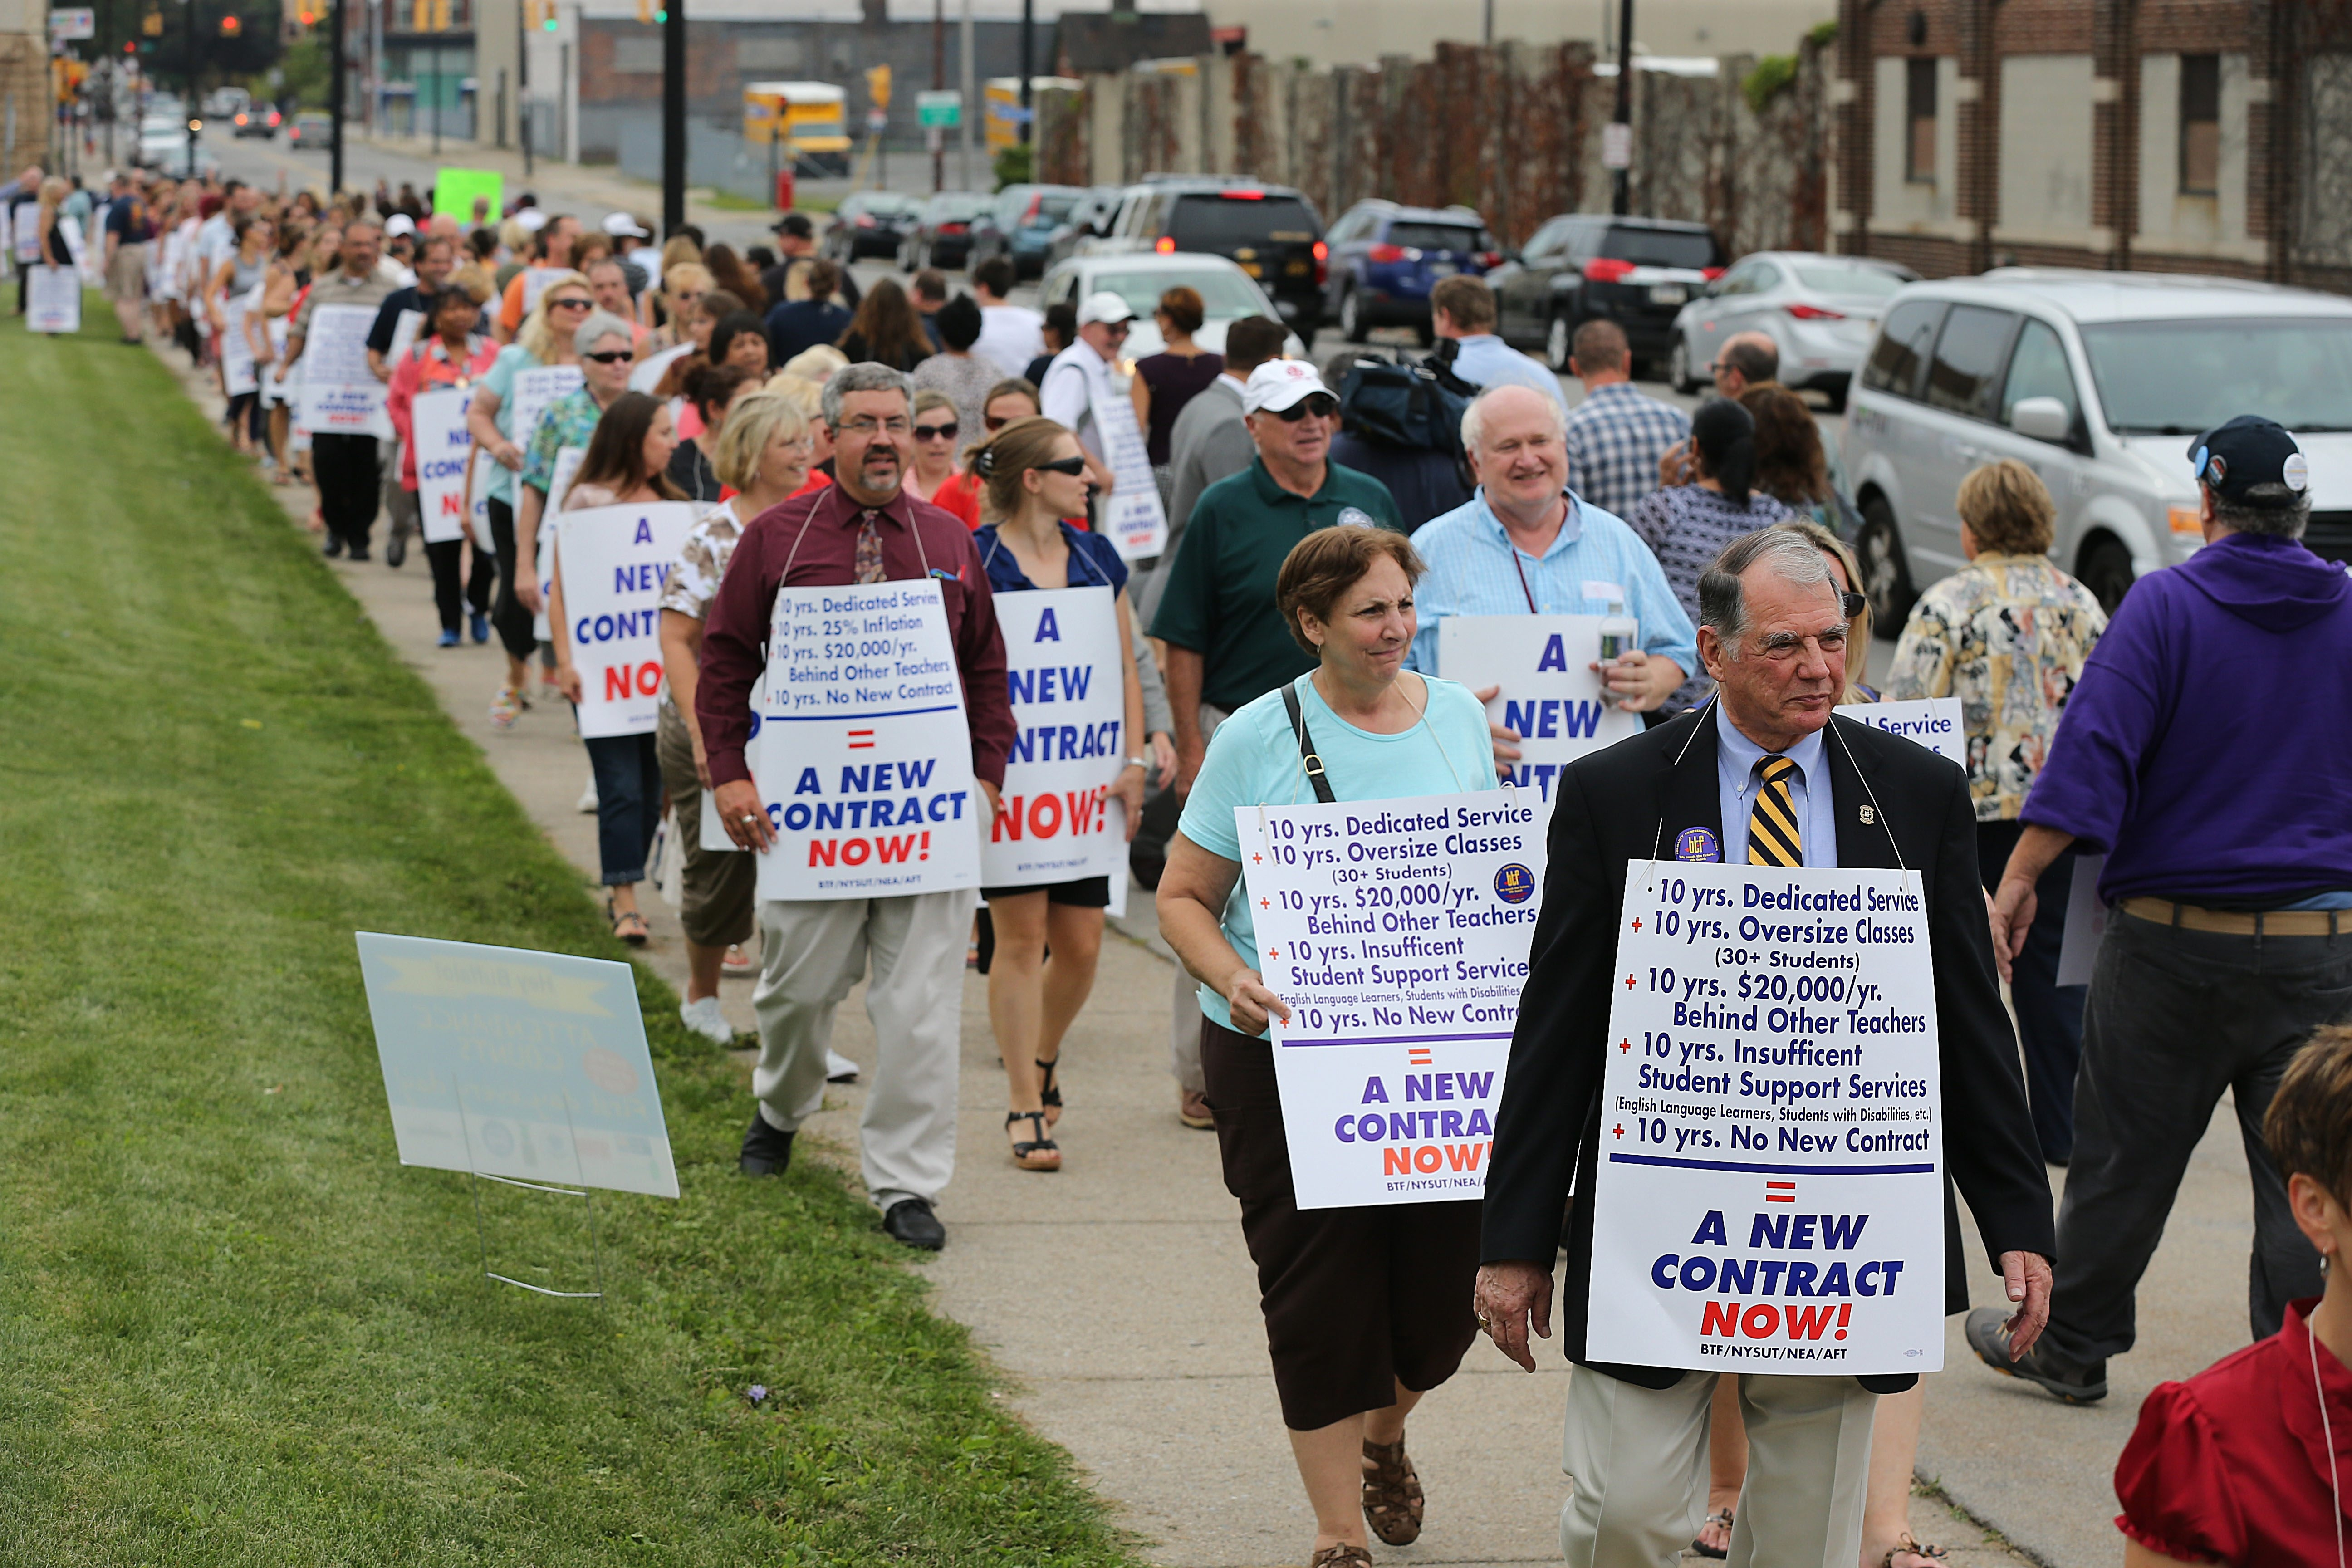 In 2014 BTF President Phil Rumore, right, marched a picket line calling for a new contract. His response to the district's offer will show how serious he is about wanting a new contract. (Buffalo News file photo)